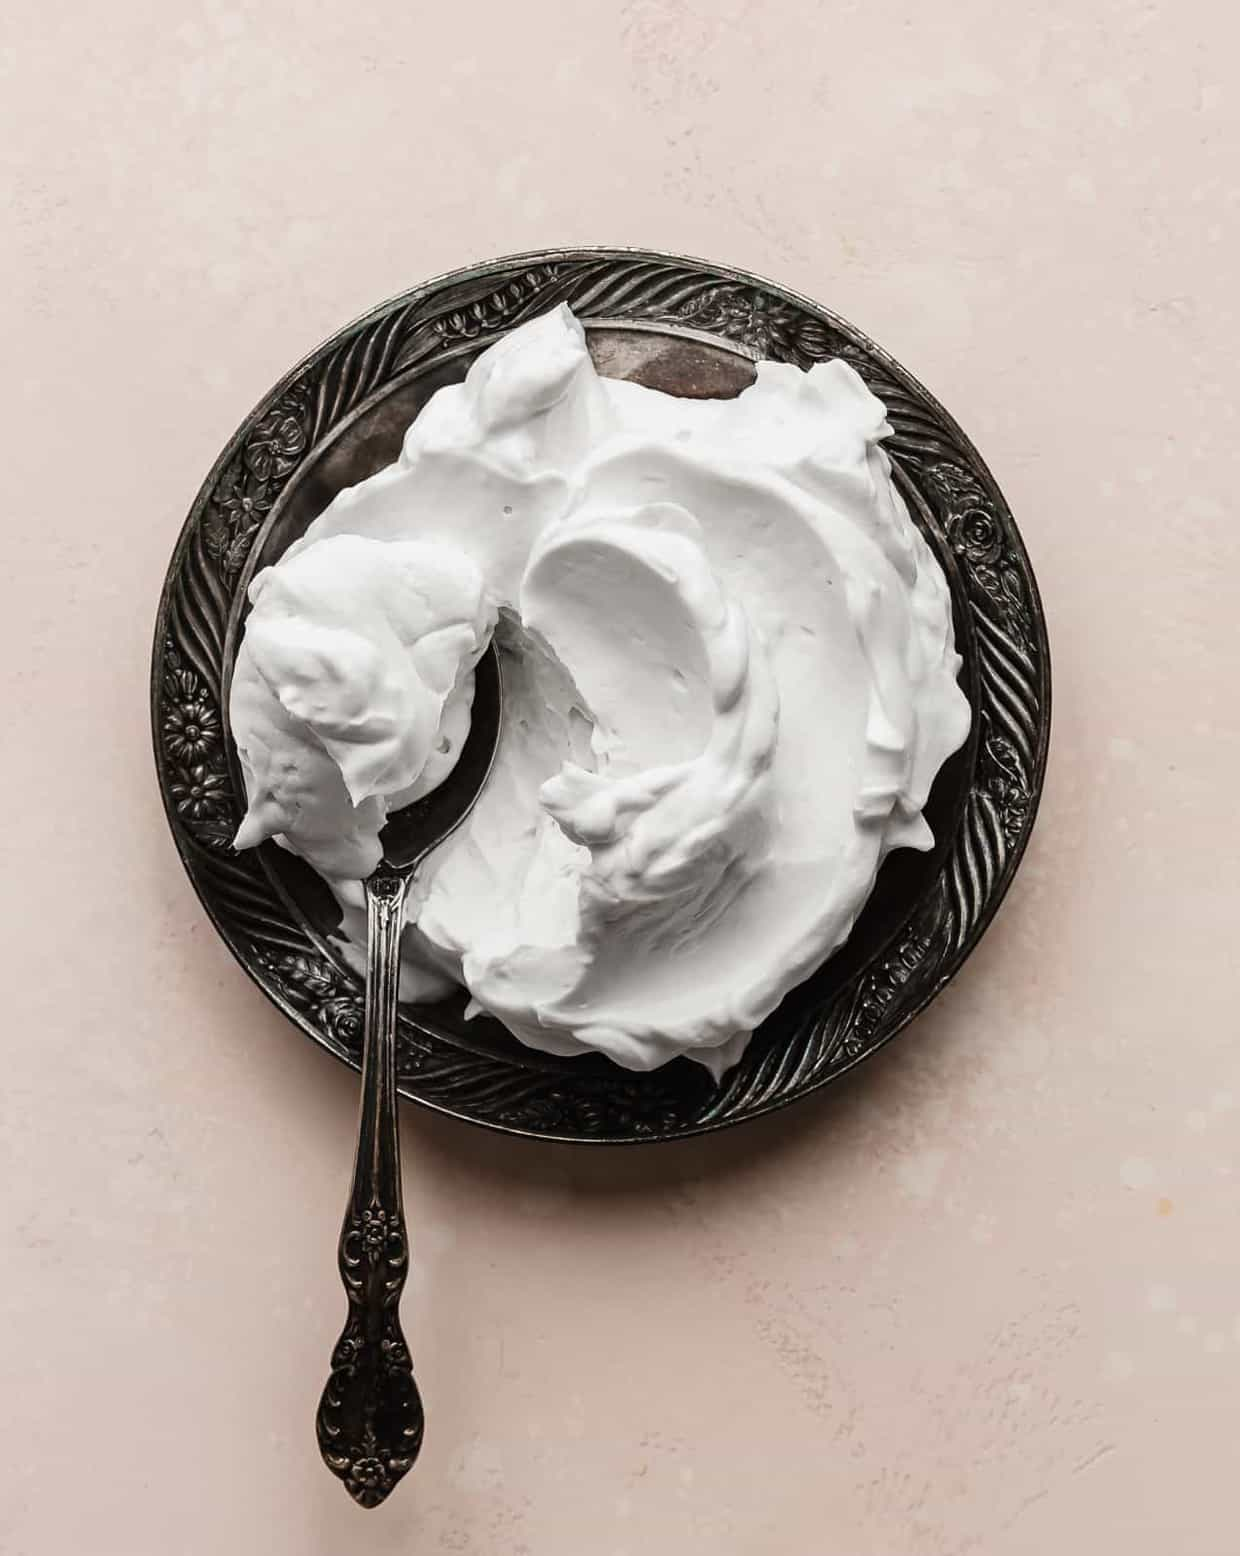 A plate full of pillowy Coconut Whipped Cream against a soft pink background.